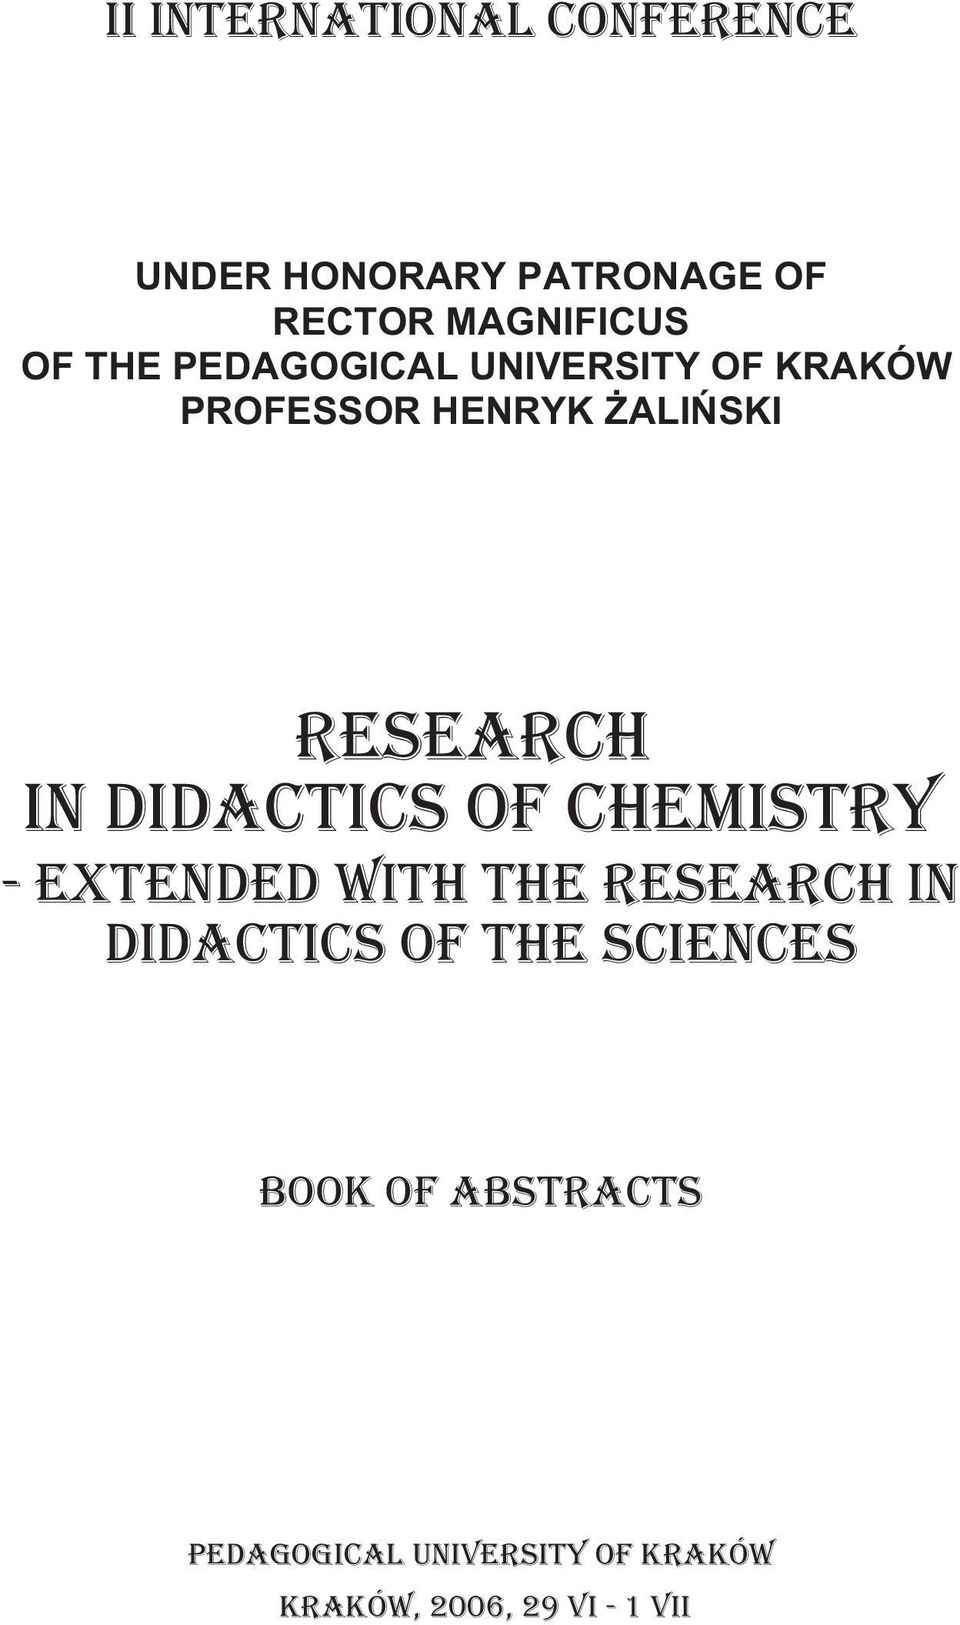 Didactics of Chemistry - extended with the Research in Didactics of the